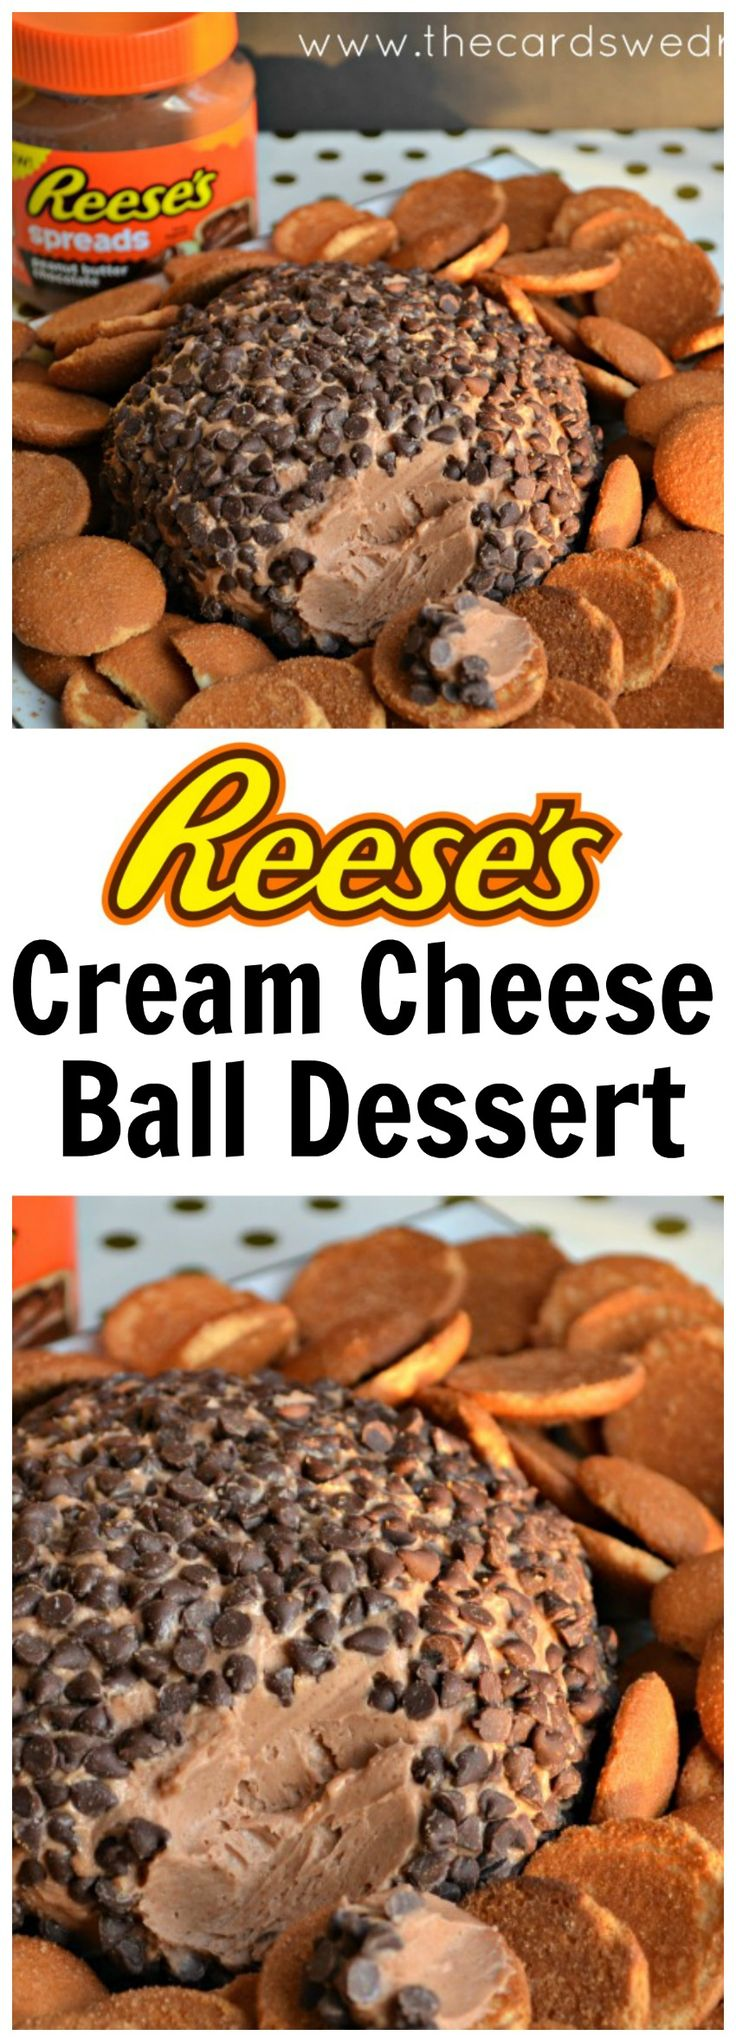 Are you a Reese's fan? They are one of my favorite candies on the planet. Always the first to disappear in our house around Halloween. But Reese's did us a HUGE favor…wait for it….THEY MADE A SPREAD!! Yep, you heard correct, there's now a smooth, creamy, yummy, Reese's spreads. I foresee lots of yummy concoctions …